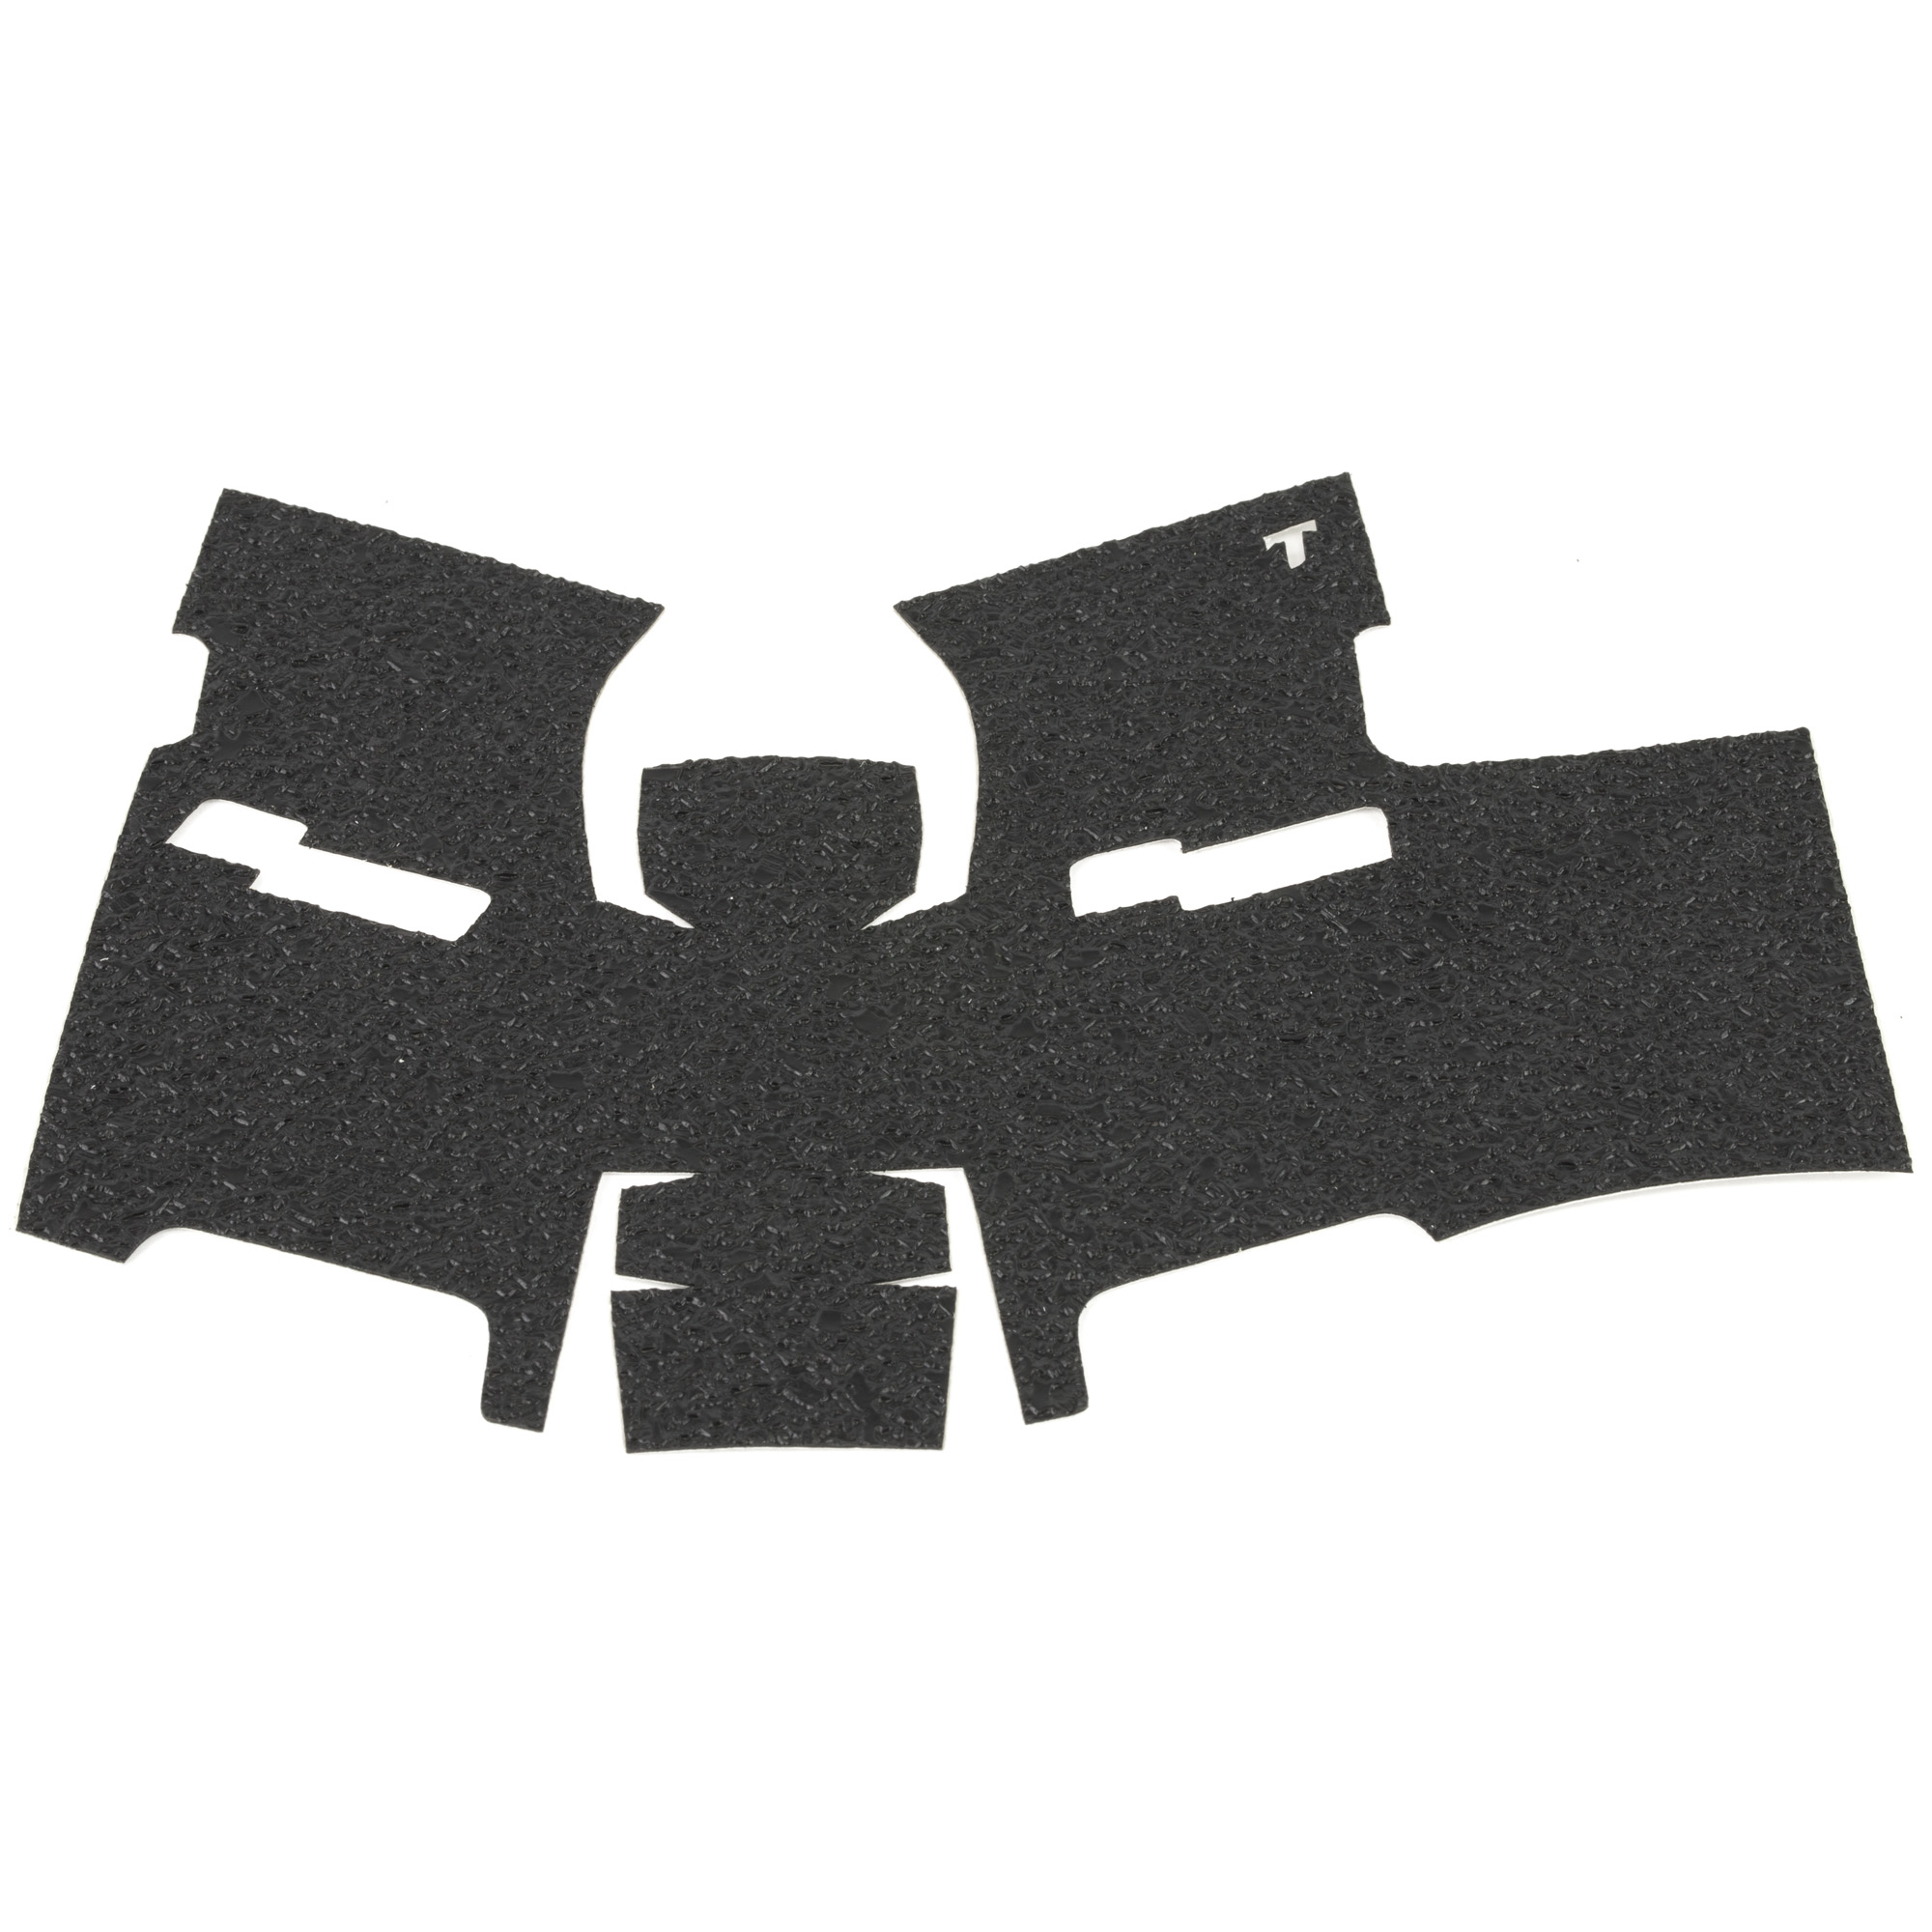 """TALON Grips for Full Size Springfield XD models with the 4"""" and 5"""" barrels for the 9mm"""" .357"""" .40. This rear wrap grip is in the rubber texture. This grip has full coverage on the side panels through the thumb rest"""" logo cutouts on each side"""" ample coverage on the backstrap and full coverage under the trigger guard."""